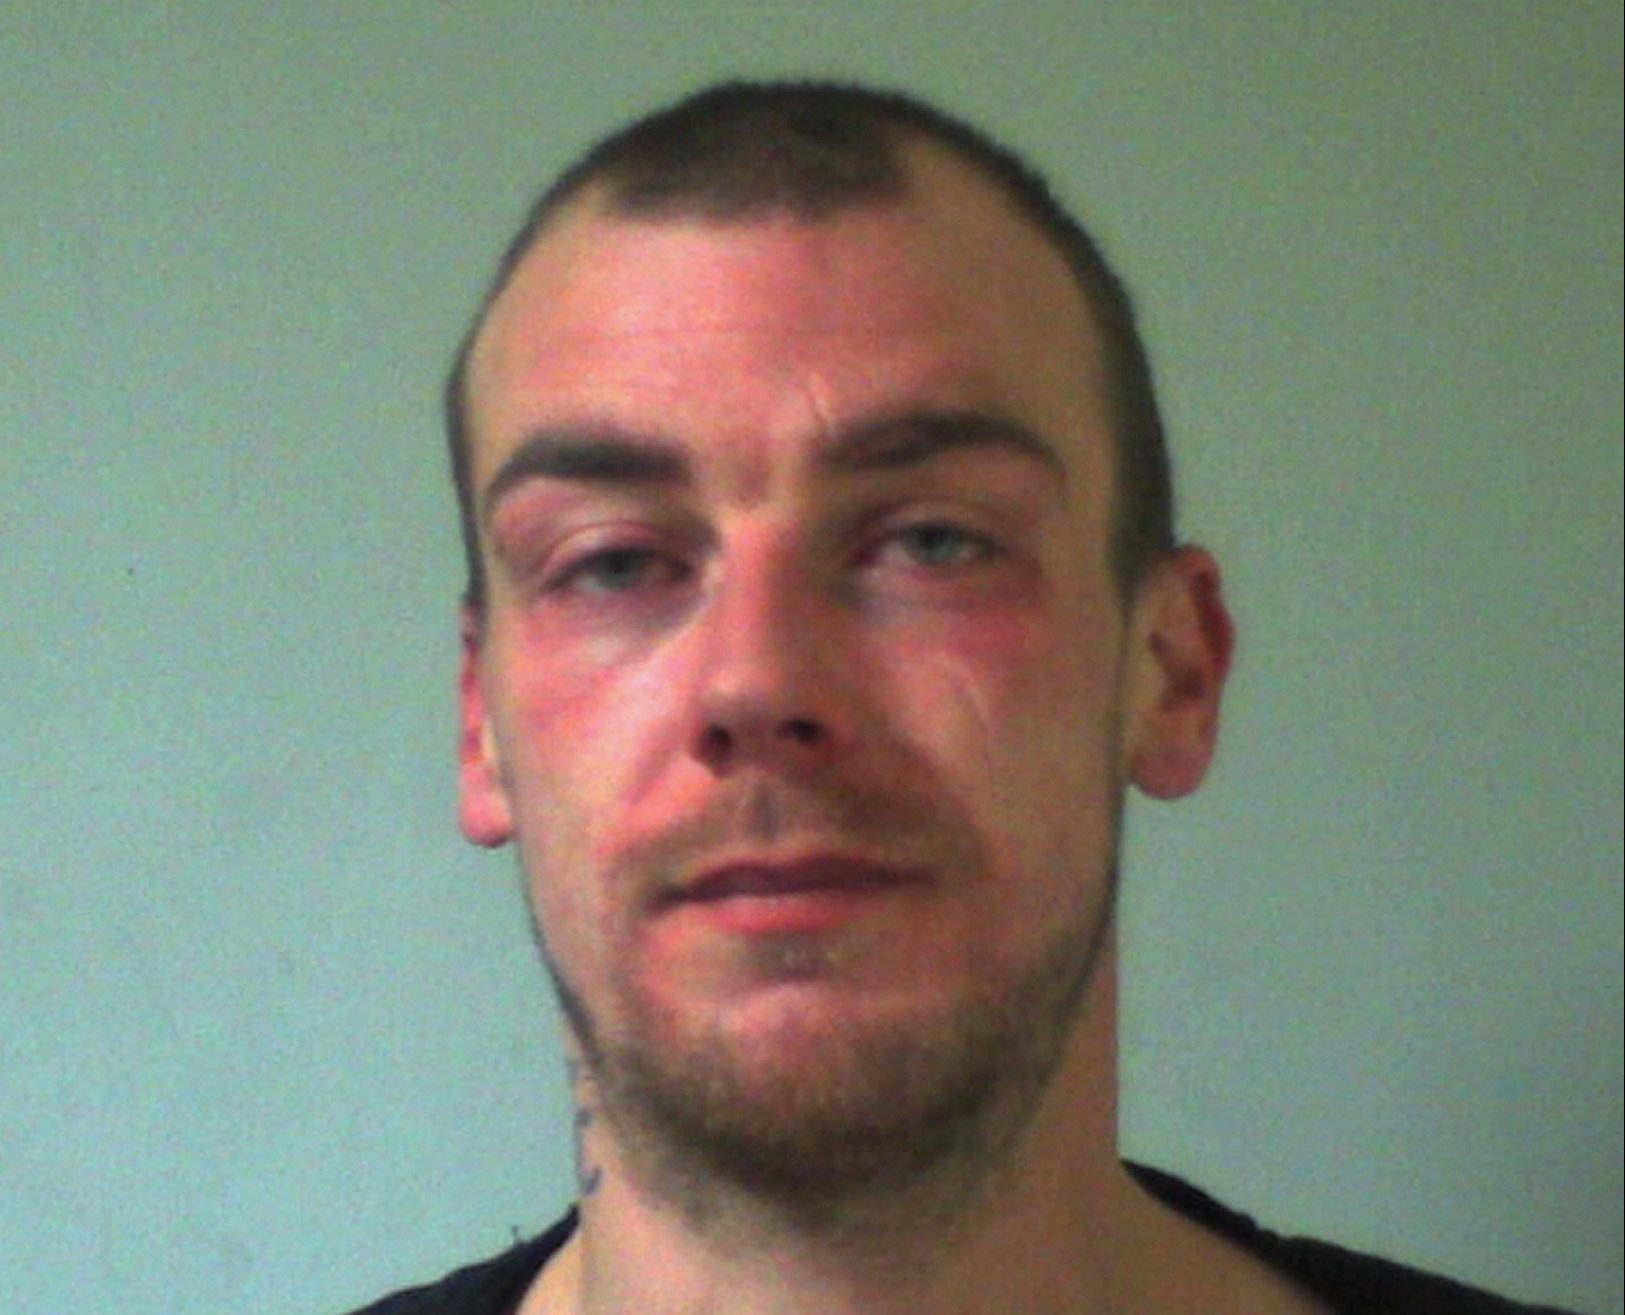 Undated Lancashire Constabulary handout photo of Aaron Sutcliffe, 29, who was sentenced to six years and nine months in prison after he earlier admitted two counts of inflicting grievous bodily harm for knowingly infecting two women with the HIV virus. PRESS ASSOCIATION Photo. Issue date: Tuesday October 30, 2018. See PA story COURTS HIV. Photo credit should read: Lancashire Constabulary/PA Wire NOTE TO EDITORS: This handout photo may only be used in for editorial reporting purposes for the contemporaneous illustration of events, things or the people in the image or facts mentioned in the caption. Reuse of the picture may require further permission from the copyright holder.